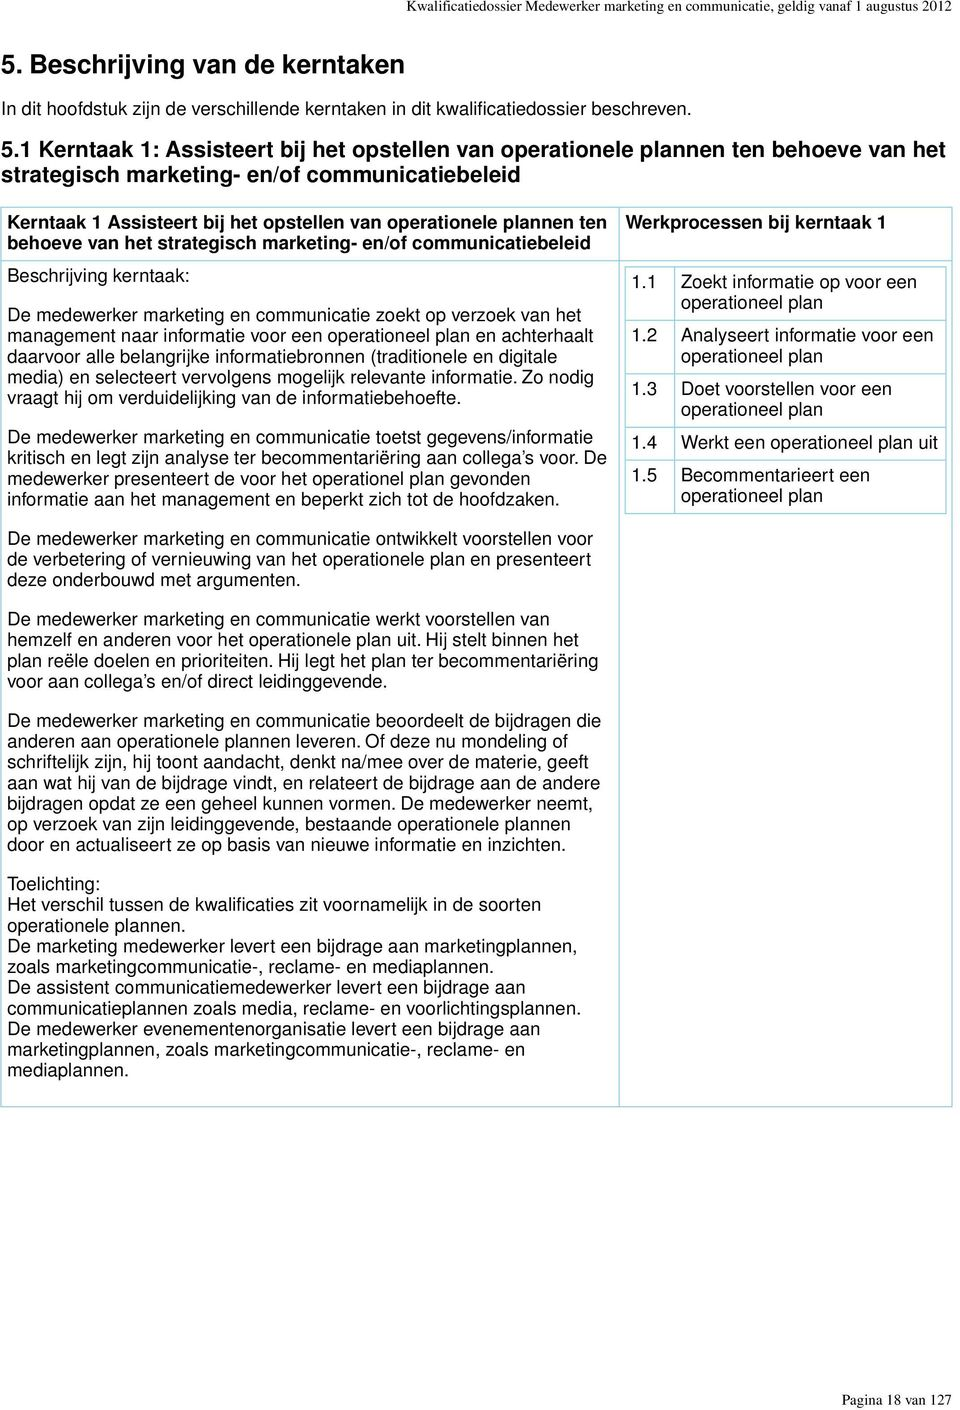 1 Kerntaak 1: Assisteert bij het opstellen van operationele plannen ten behoeve van het strategisch marketing- en/of communicatiebeleid Kerntaak 1 Assisteert bij het opstellen van operationele